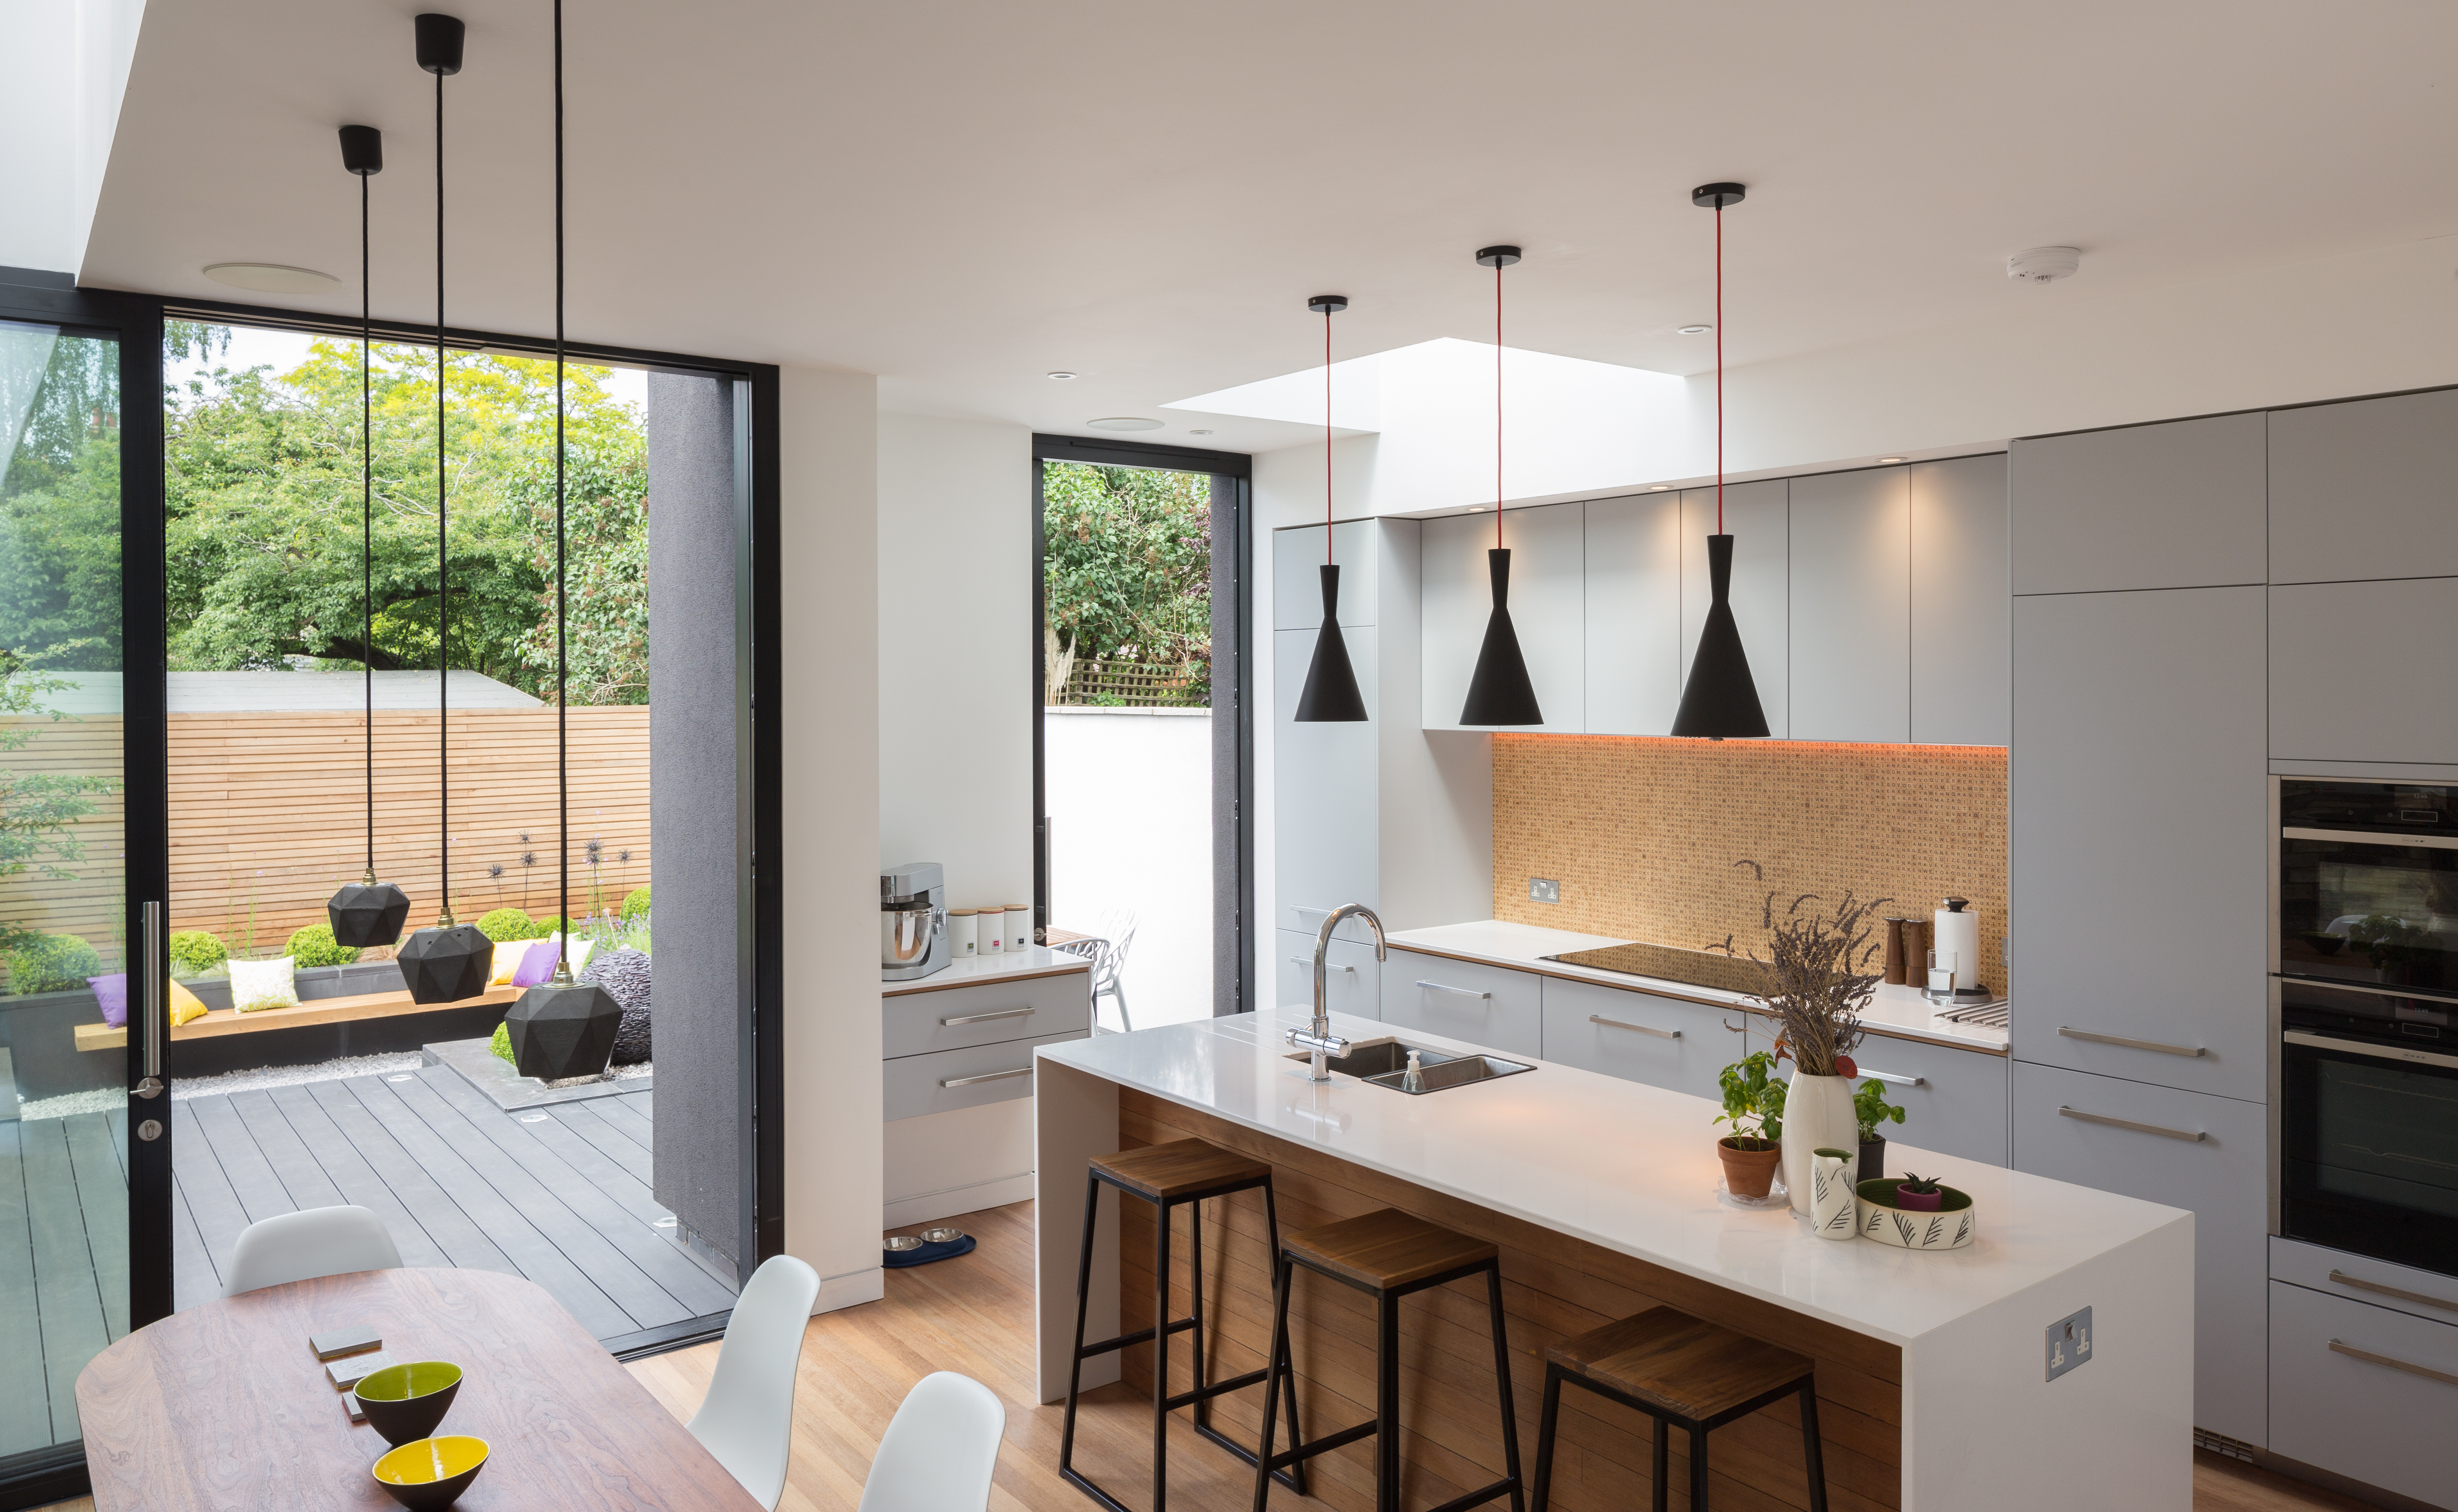 Enhancing function and flow should be the goal of any small kitchen design project. Dirty Kitchen Extension Design - Kitchenquipo